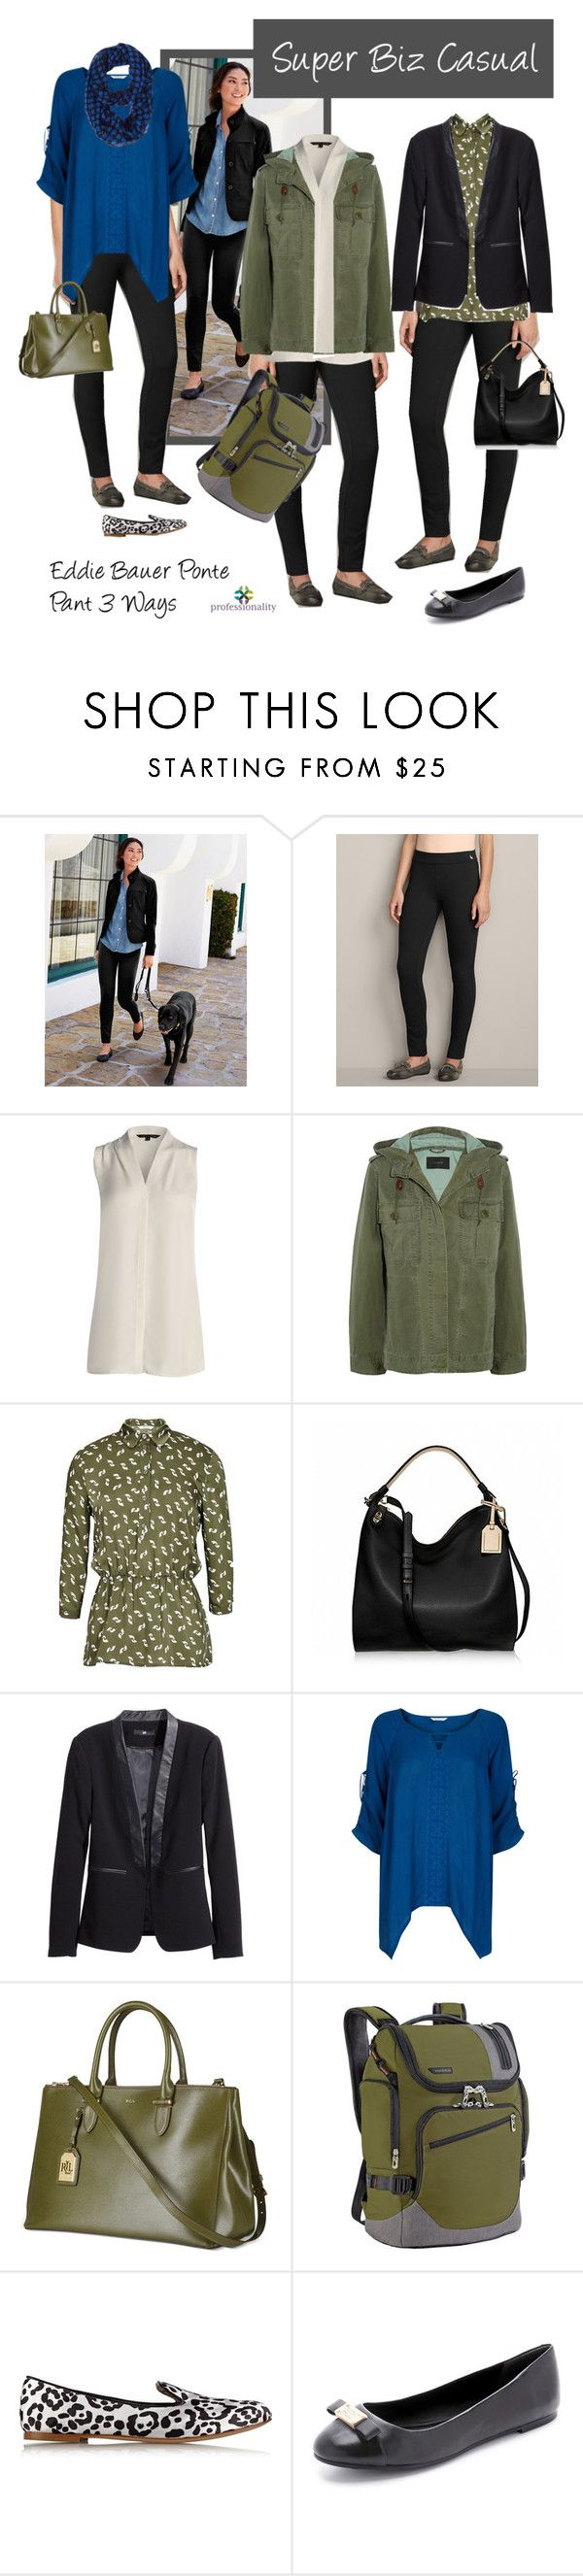 Biz Casual: Eddie Bauer Ponte Pant 3 Ways by professionality on Polyvore featuring Accessorize, NIC+ZOE, J.Crew, H&M, Marc by Marc Jacobs, Giuseppe Zanotti, Briggs & Riley, Reed Krakoff, Lauren Ralph Lauren and women's clothing